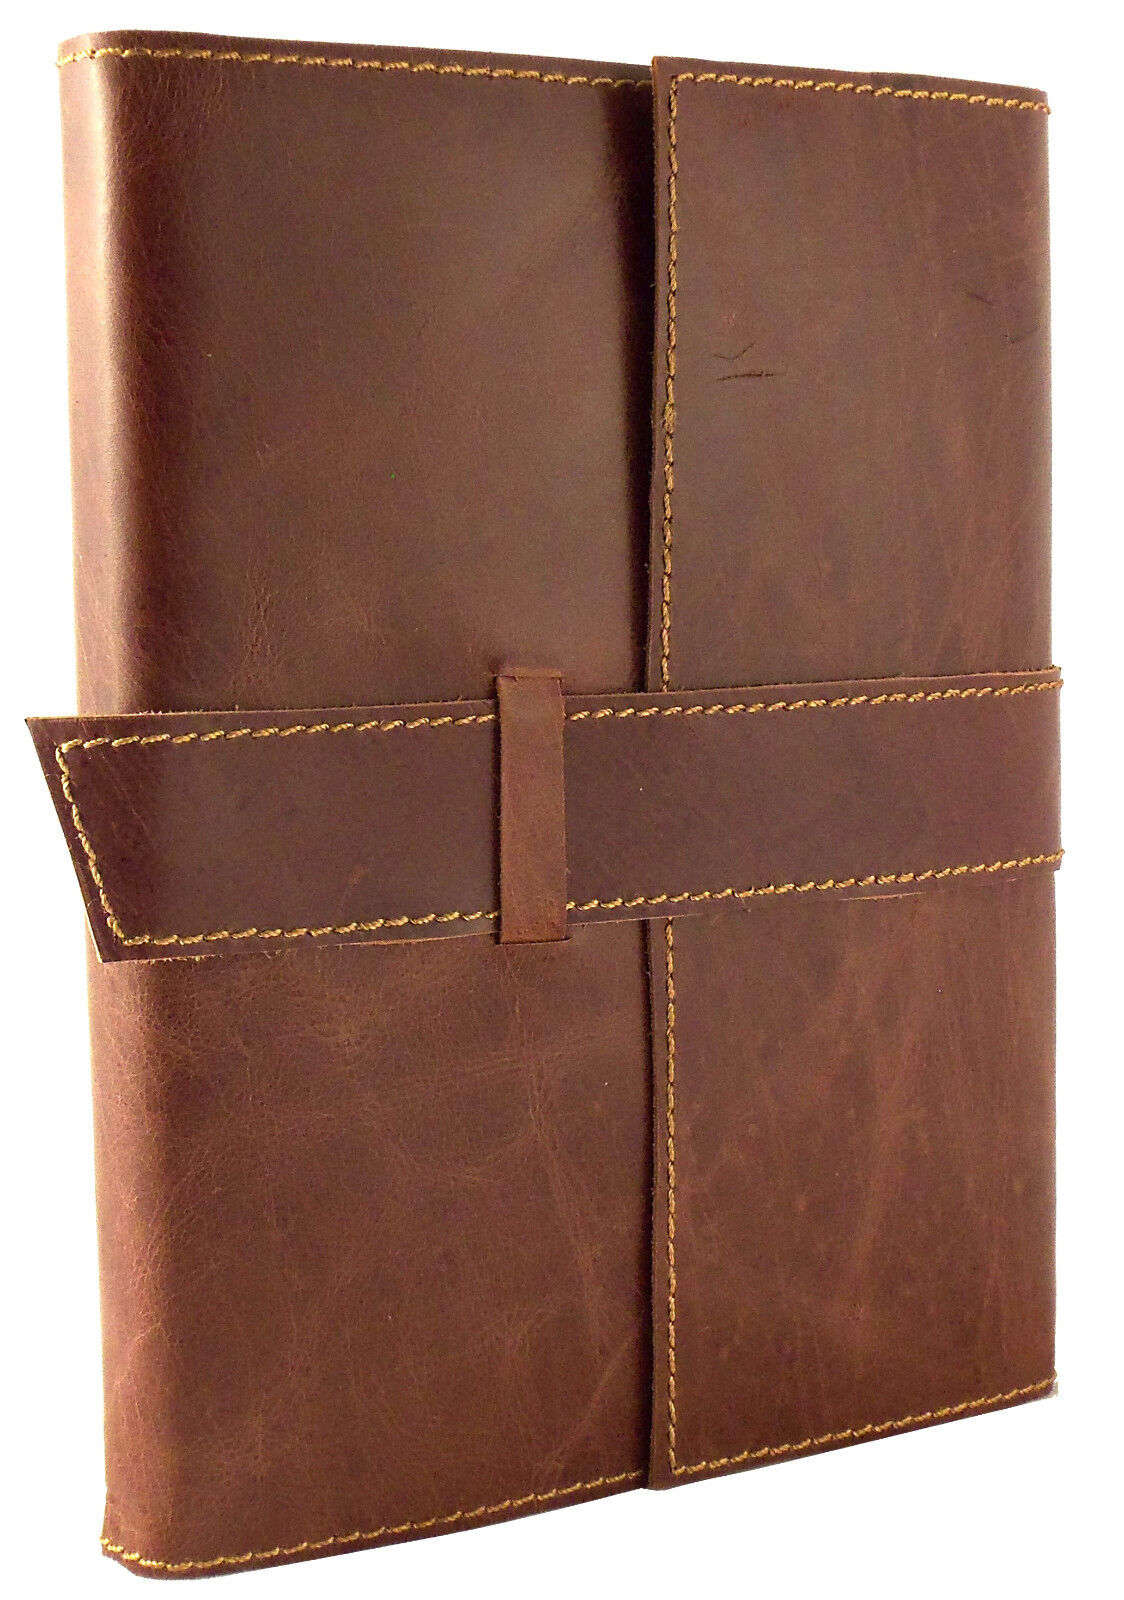 Refillable Leather Journal Sketchbook Travel Notebook Blank Diary Vintage Rustic 8